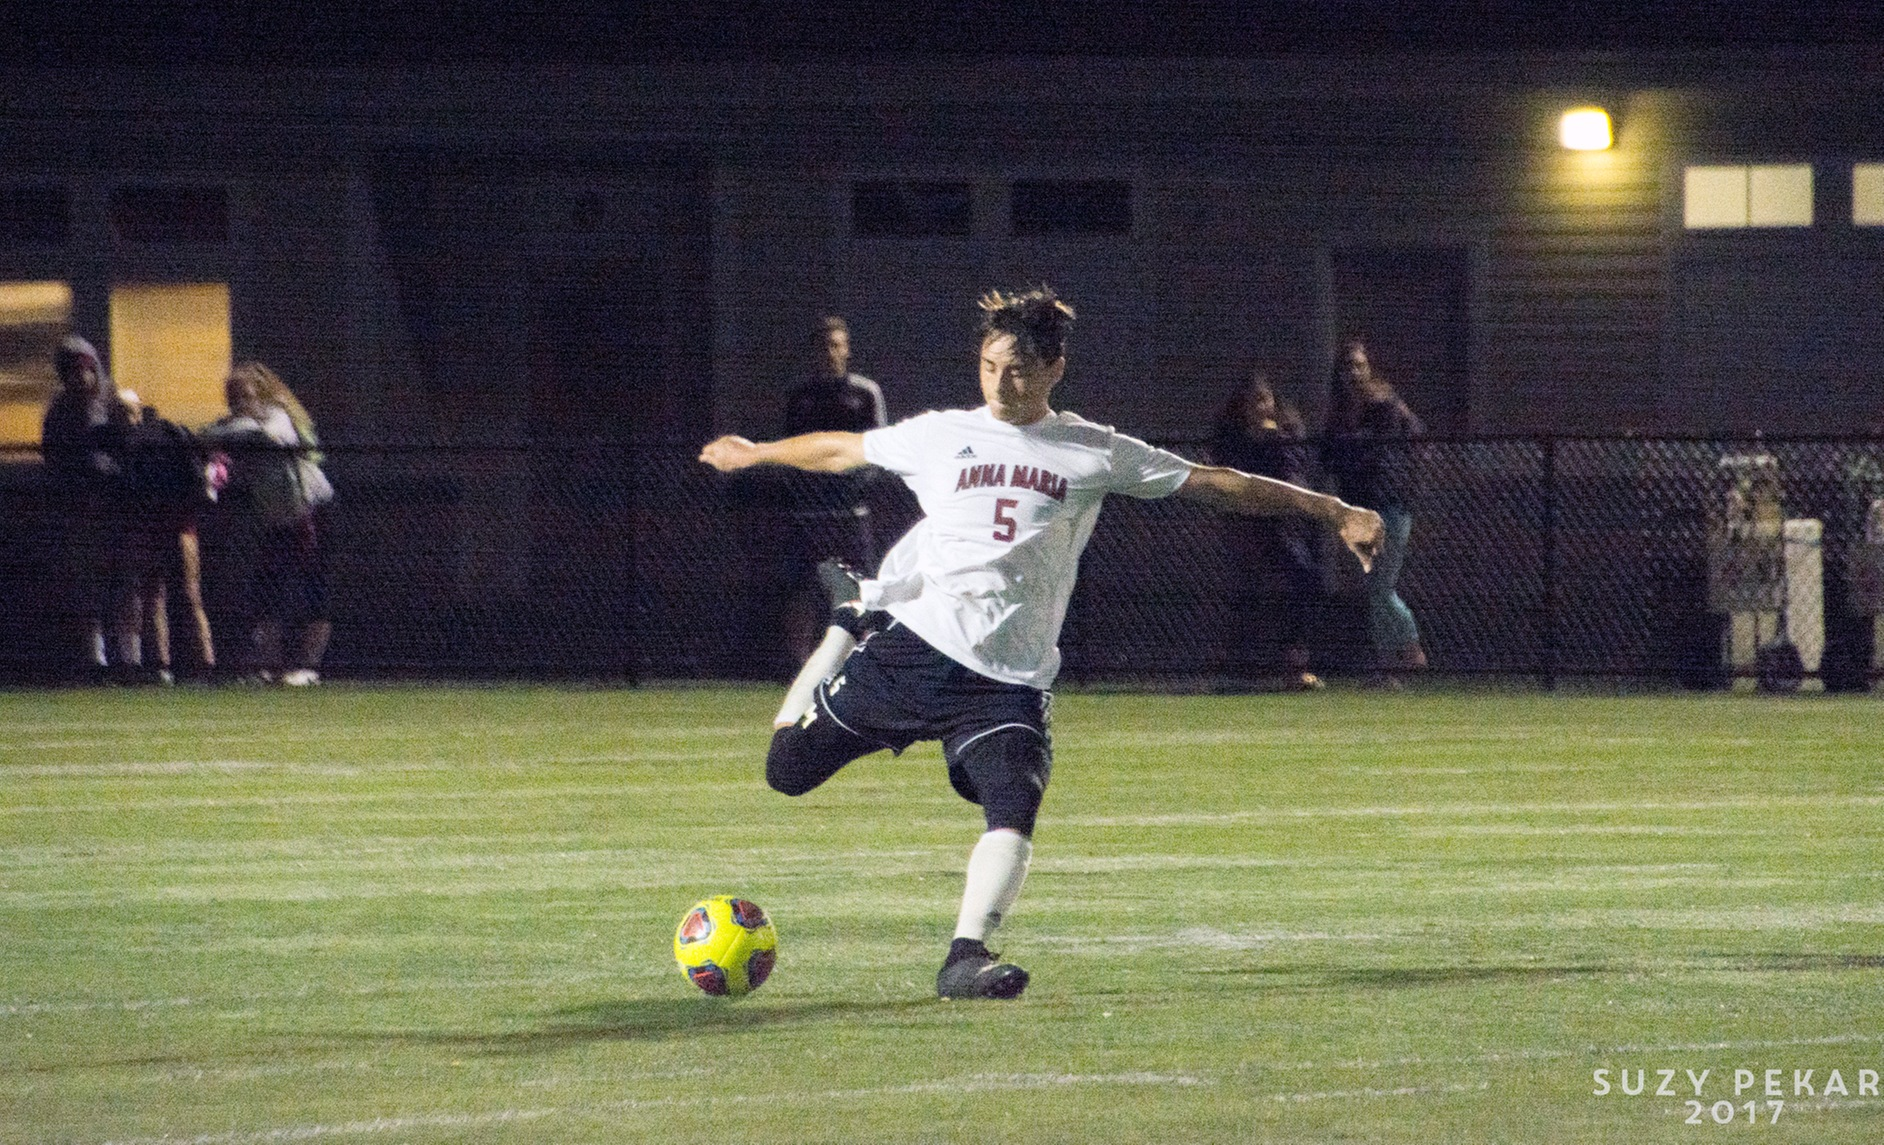 MEN'S SOCCER: Mass. Maritime posts non-conference win over Anna Maria